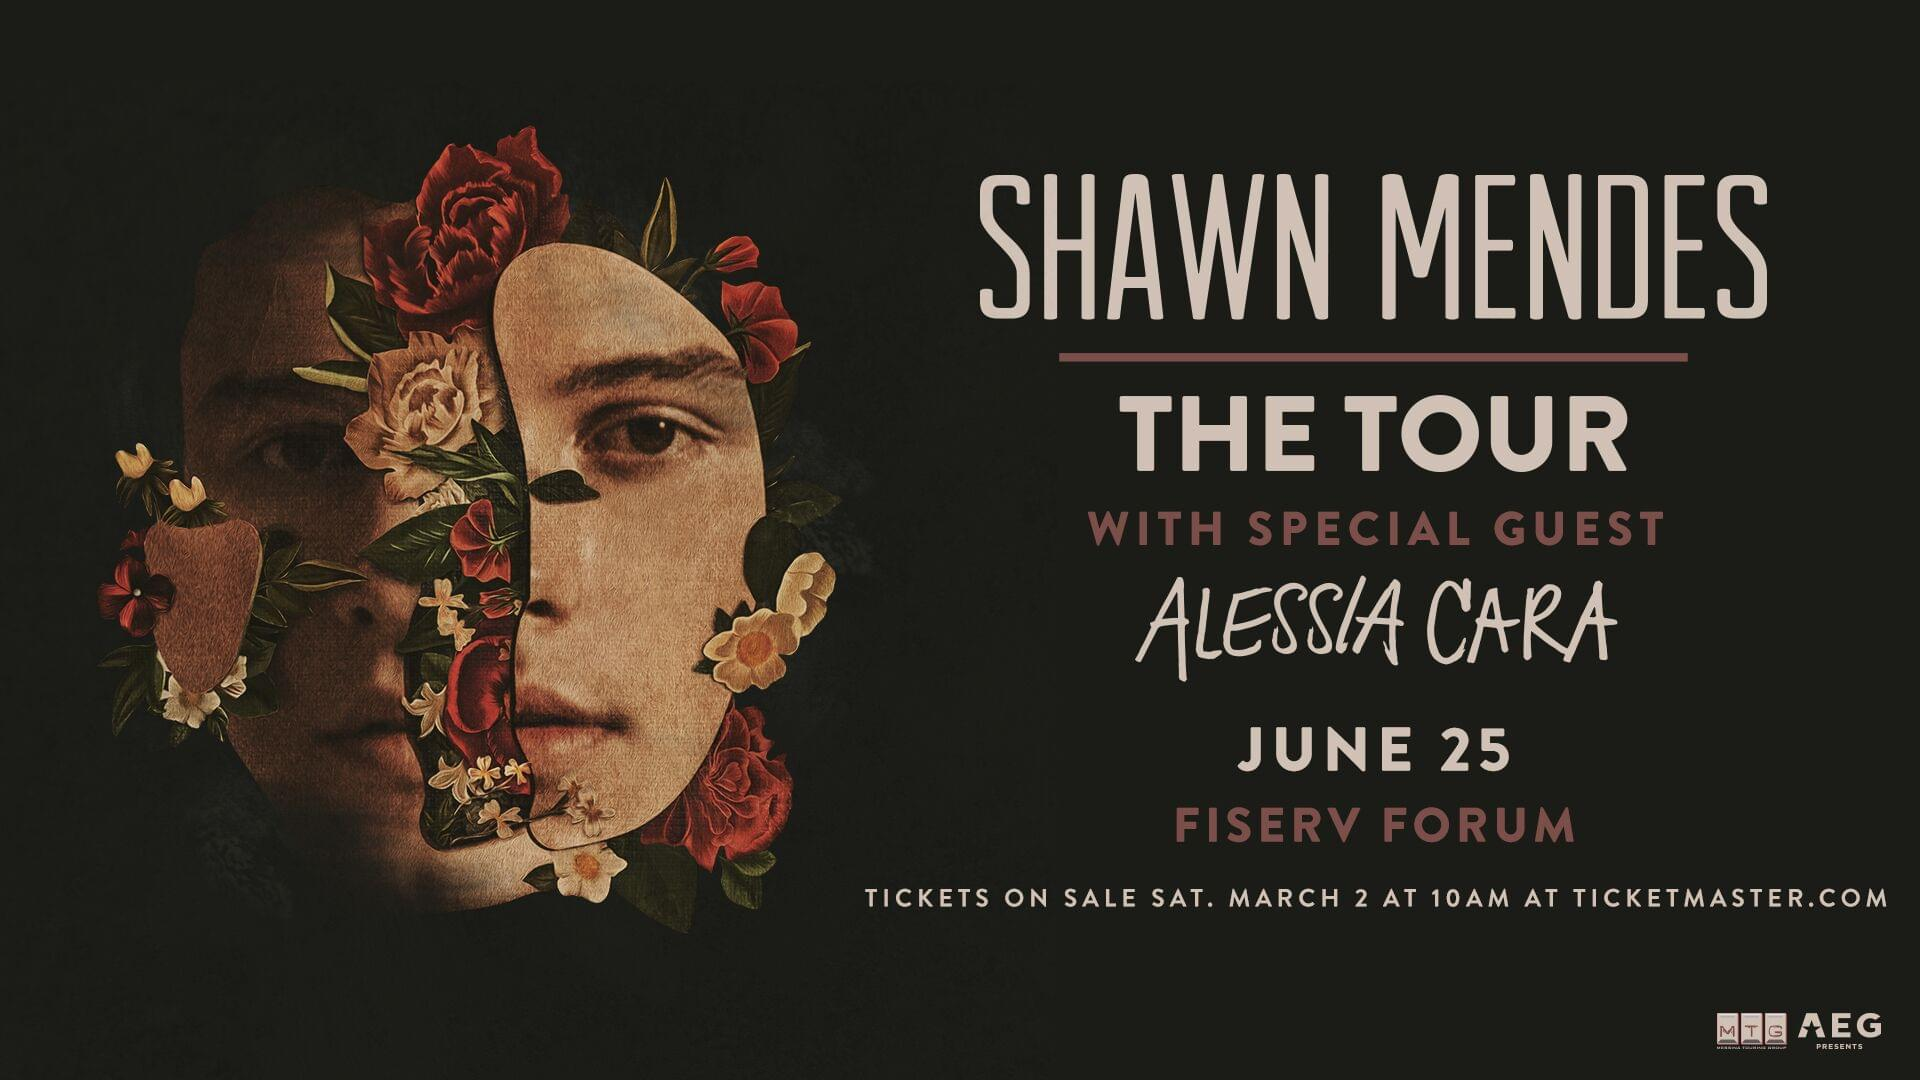 Win Tickets to see Shawn Mendes June 25th at Fiserv Forum!